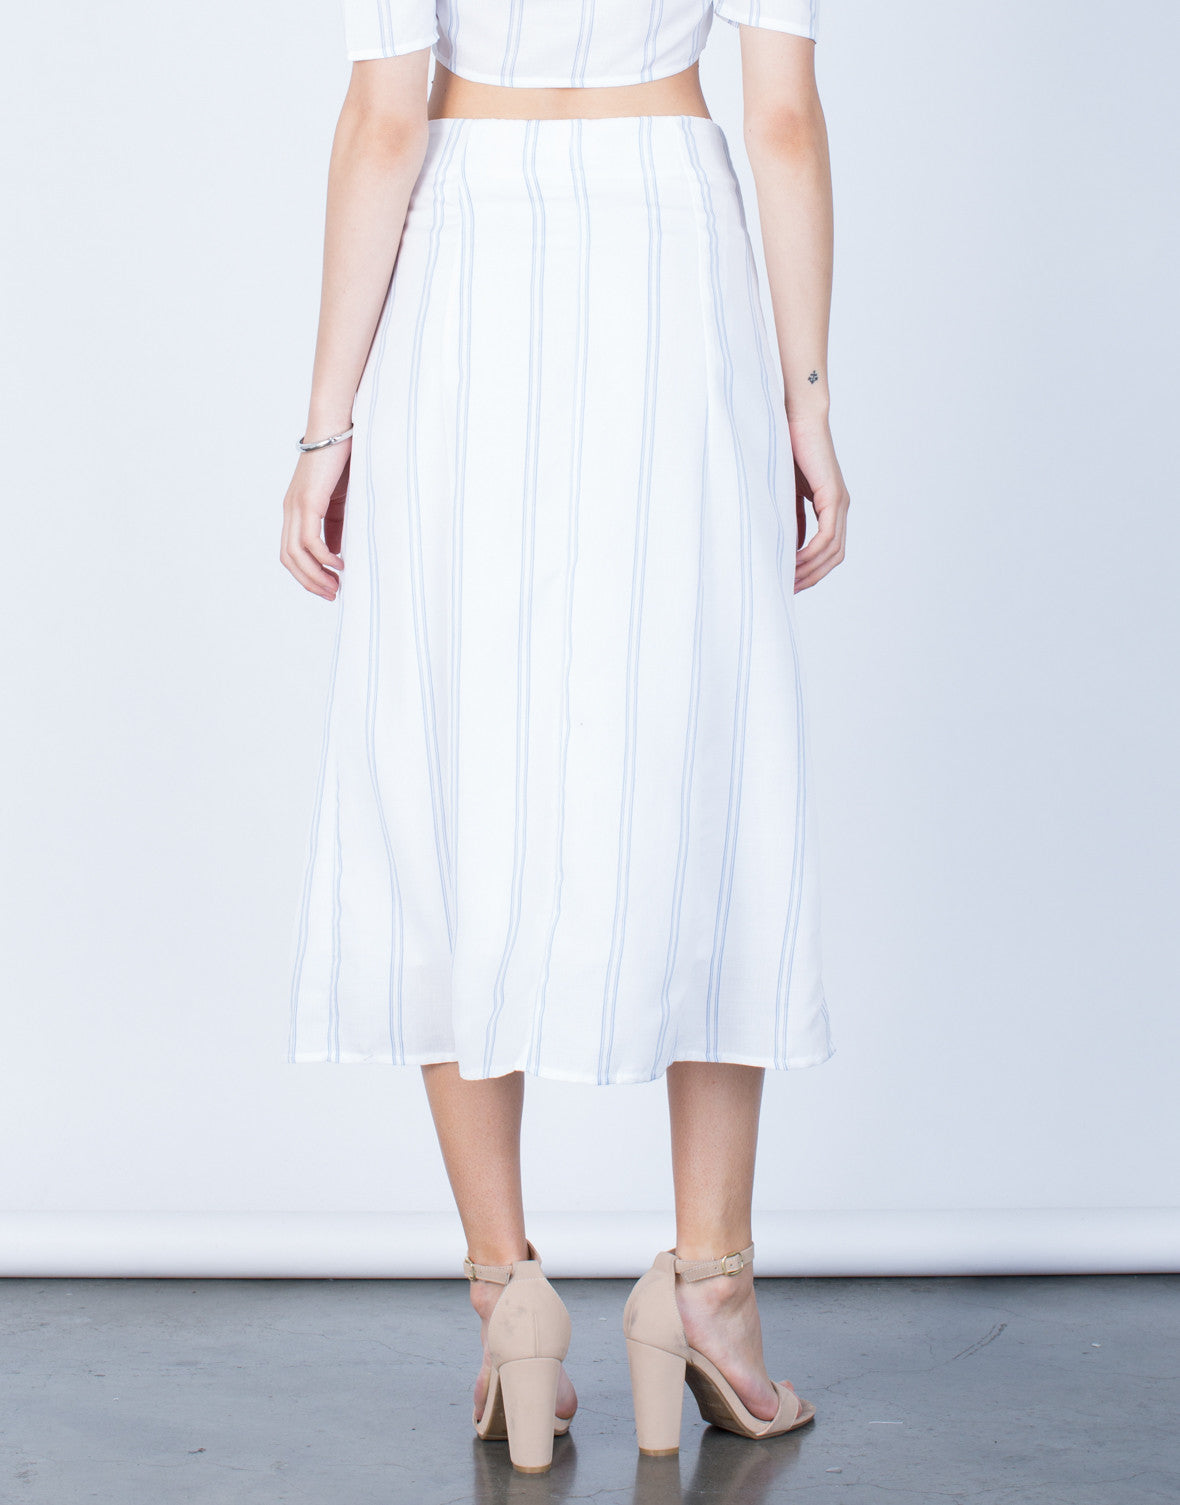 Back View of Flowy Striped Midi Skirt